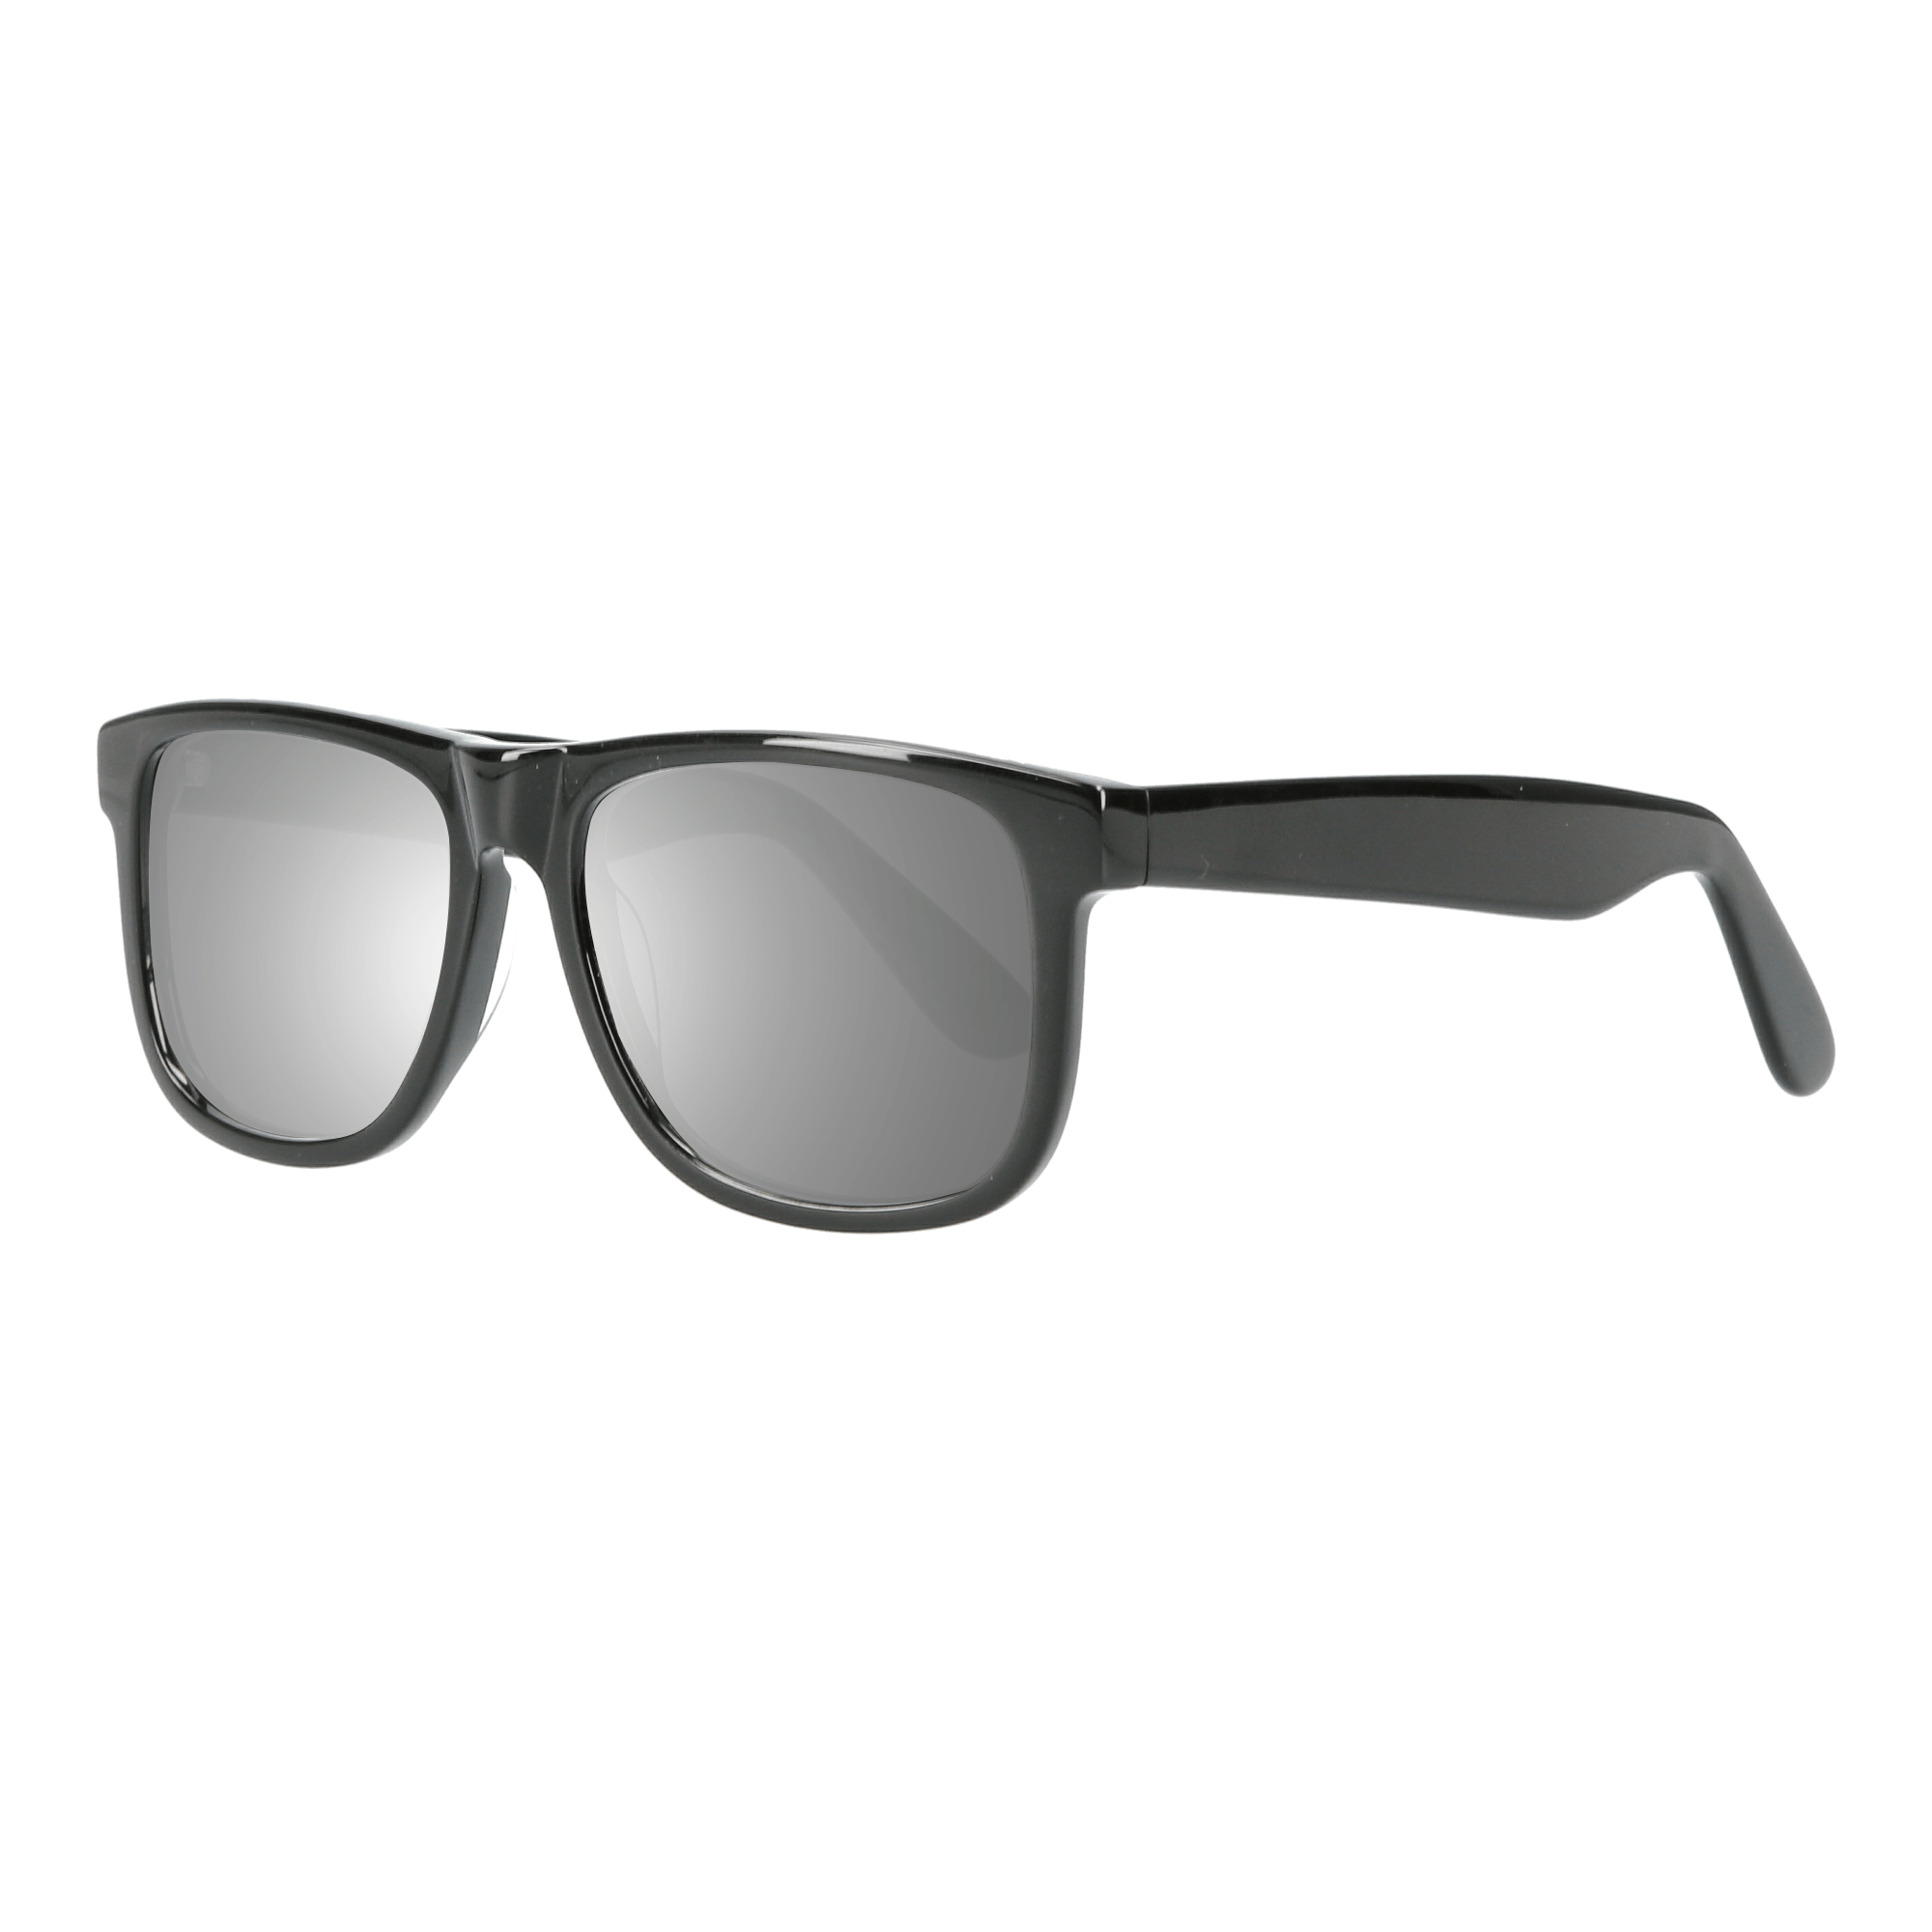 FLYNN - BLACK SUNGLASSES SAINT REETS